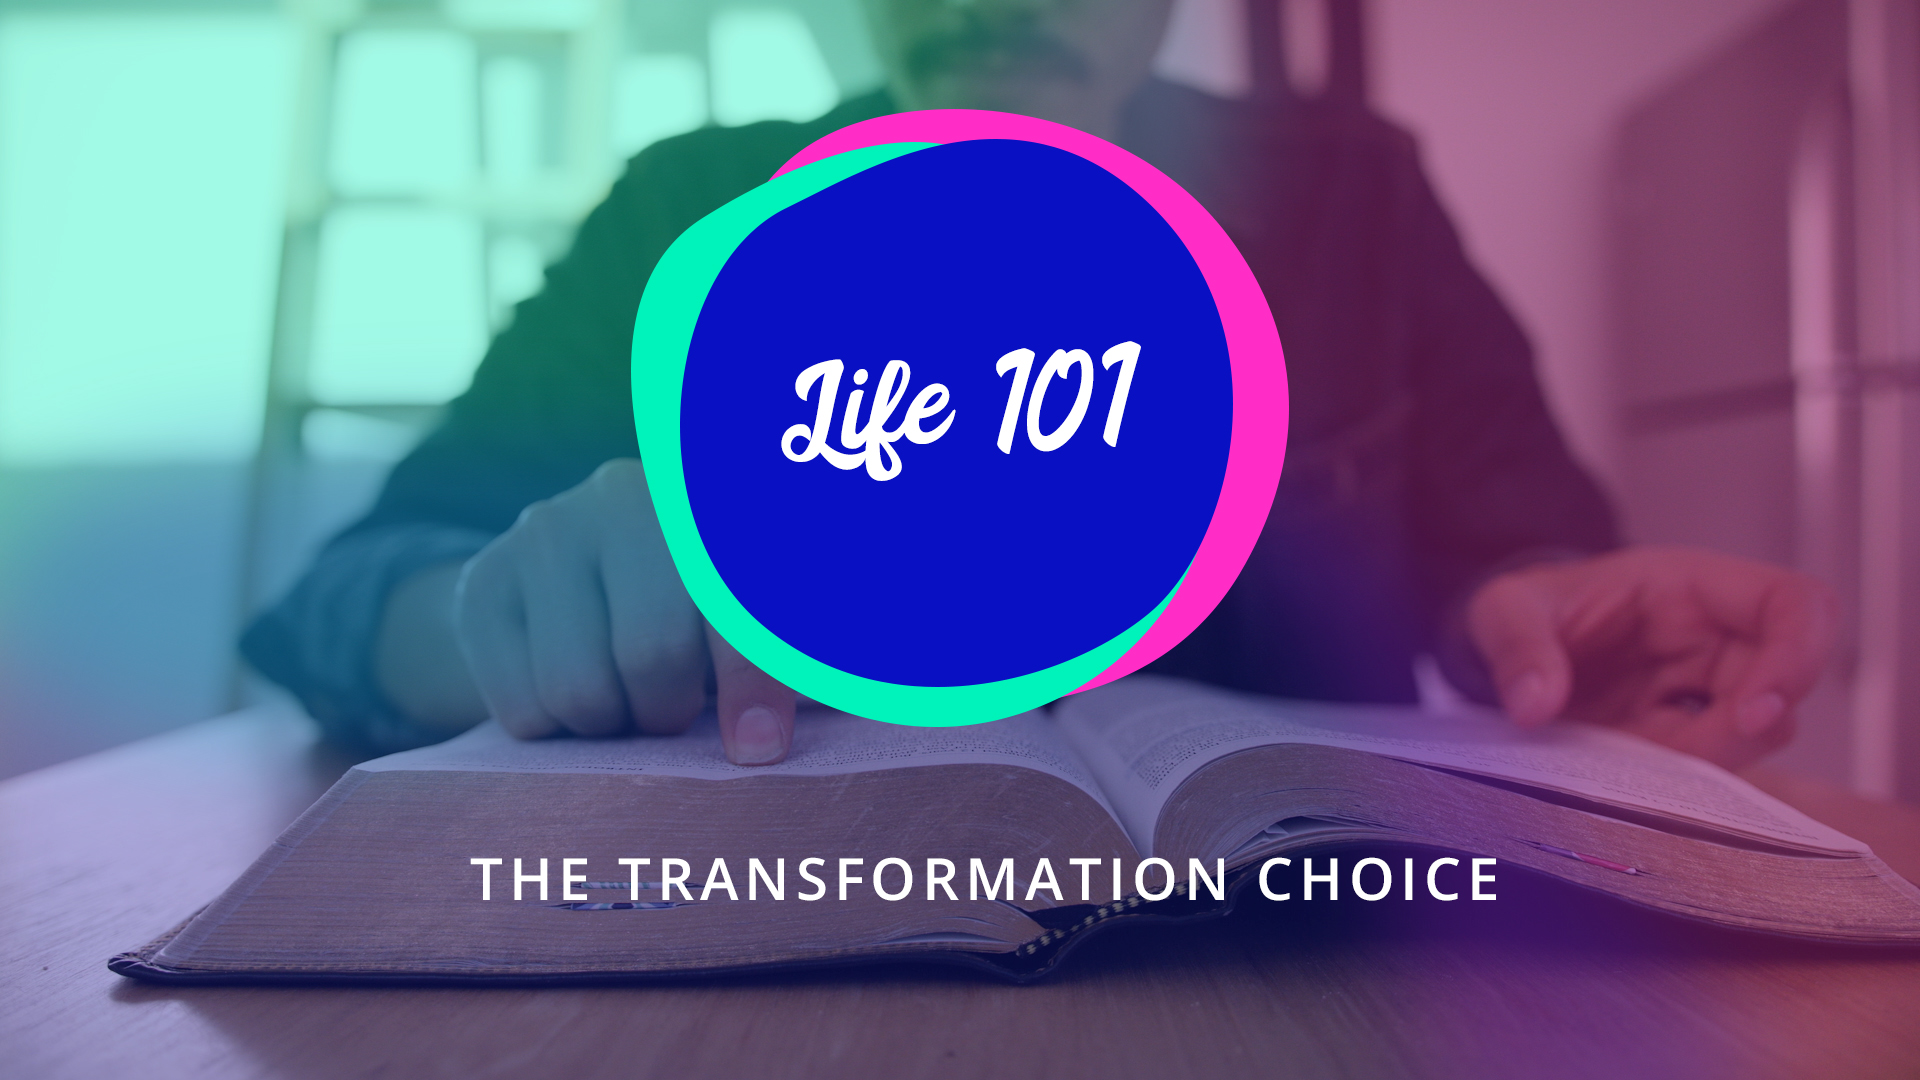 4 | The Transformation Choice